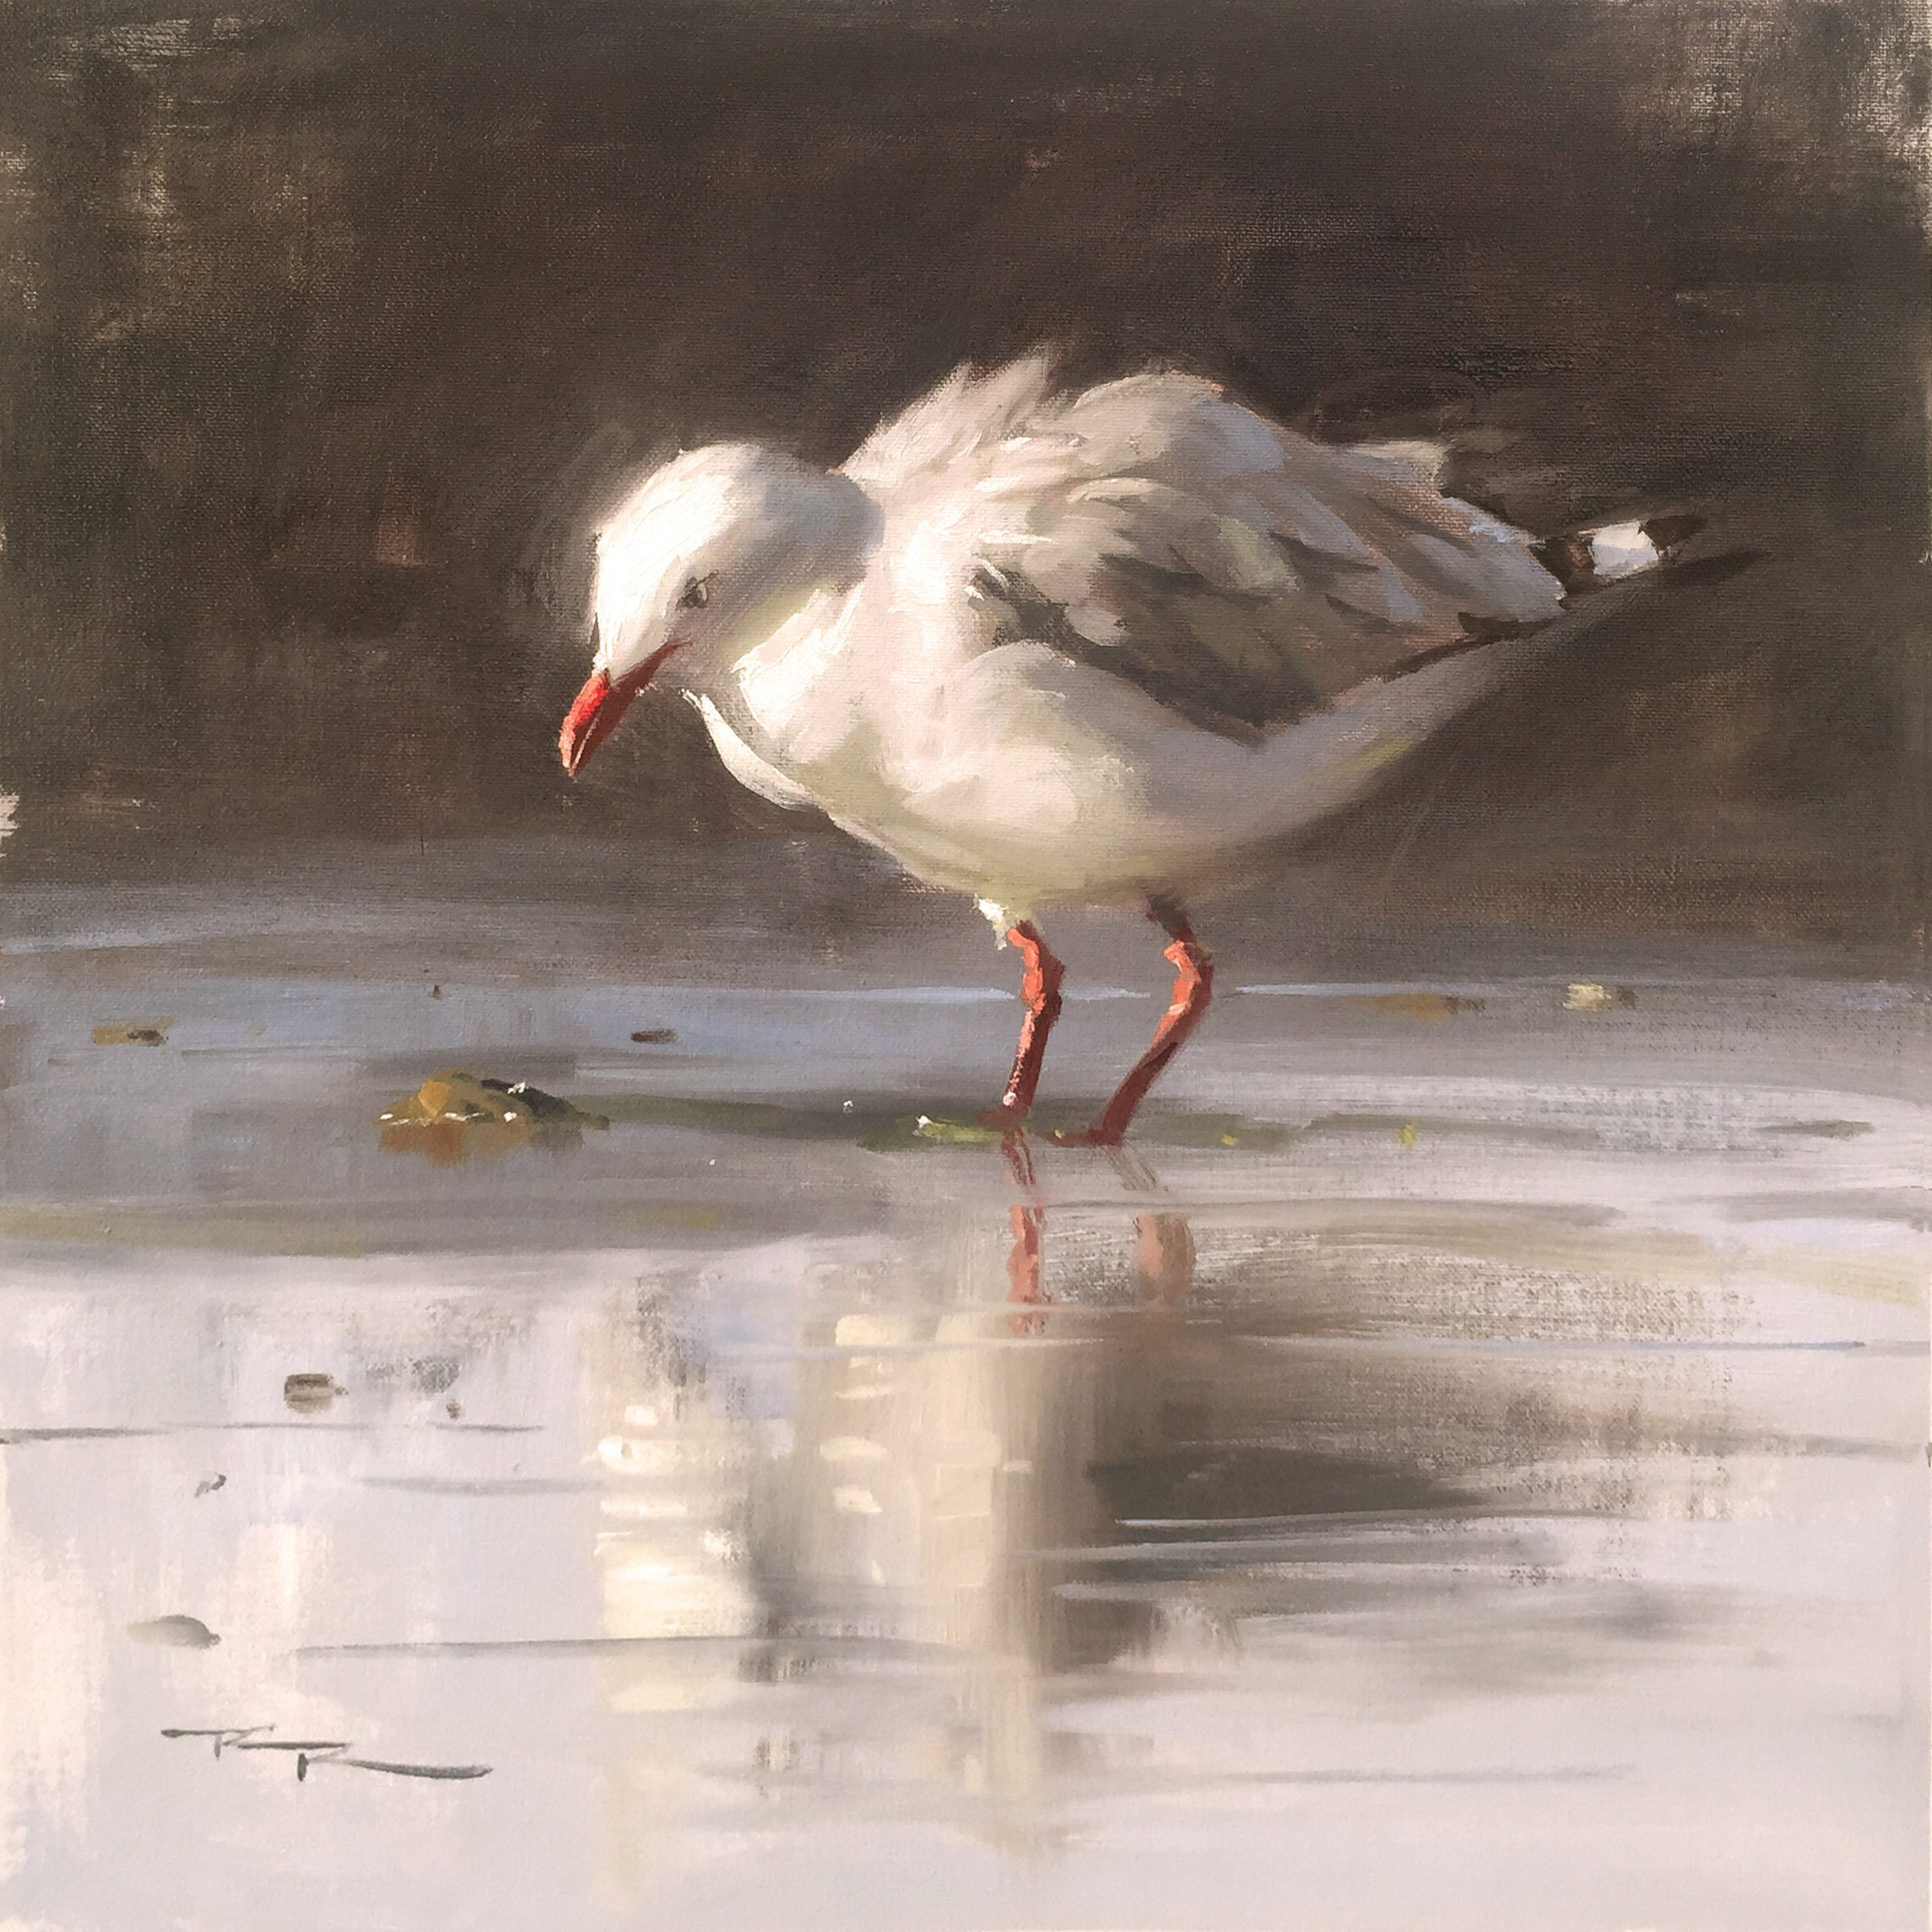 Painting Critiques - Jonathan Seagull